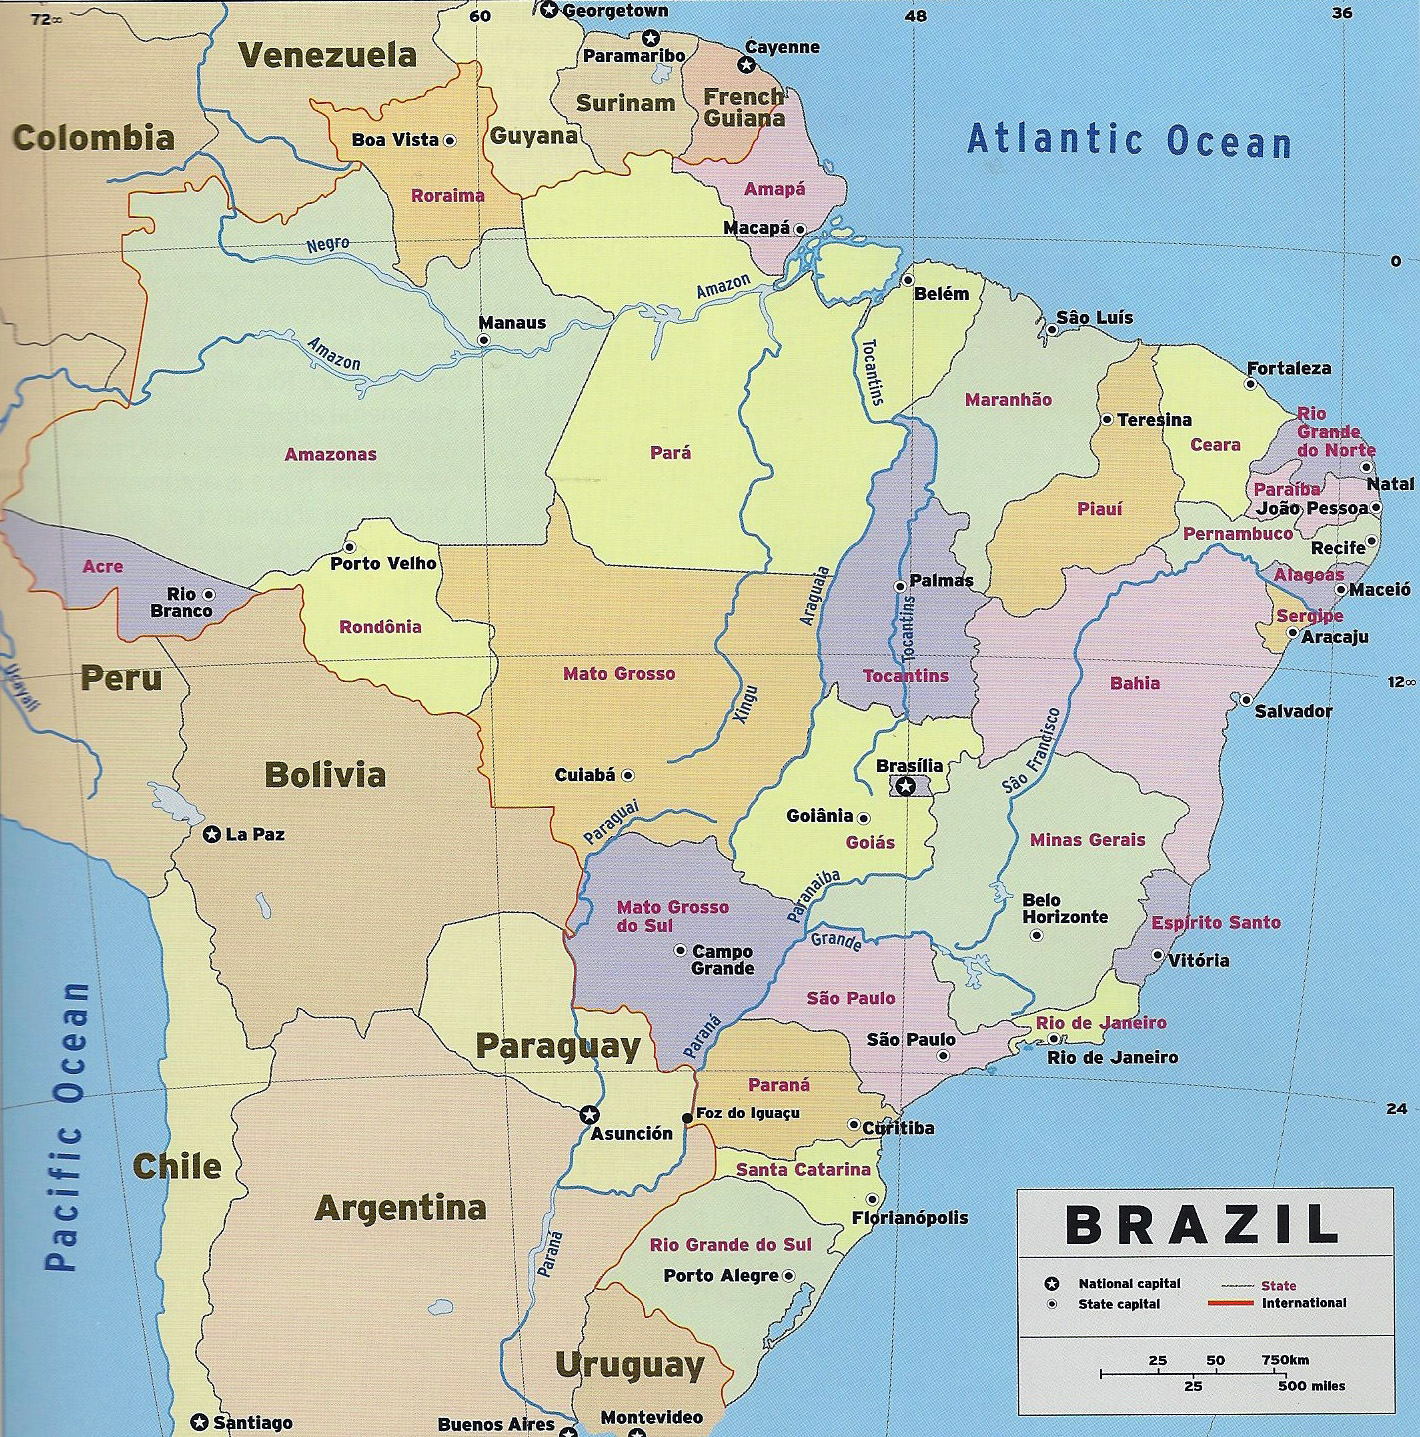 Large Detailed Political And Administrative Map Of Brazil With - Brazil political map